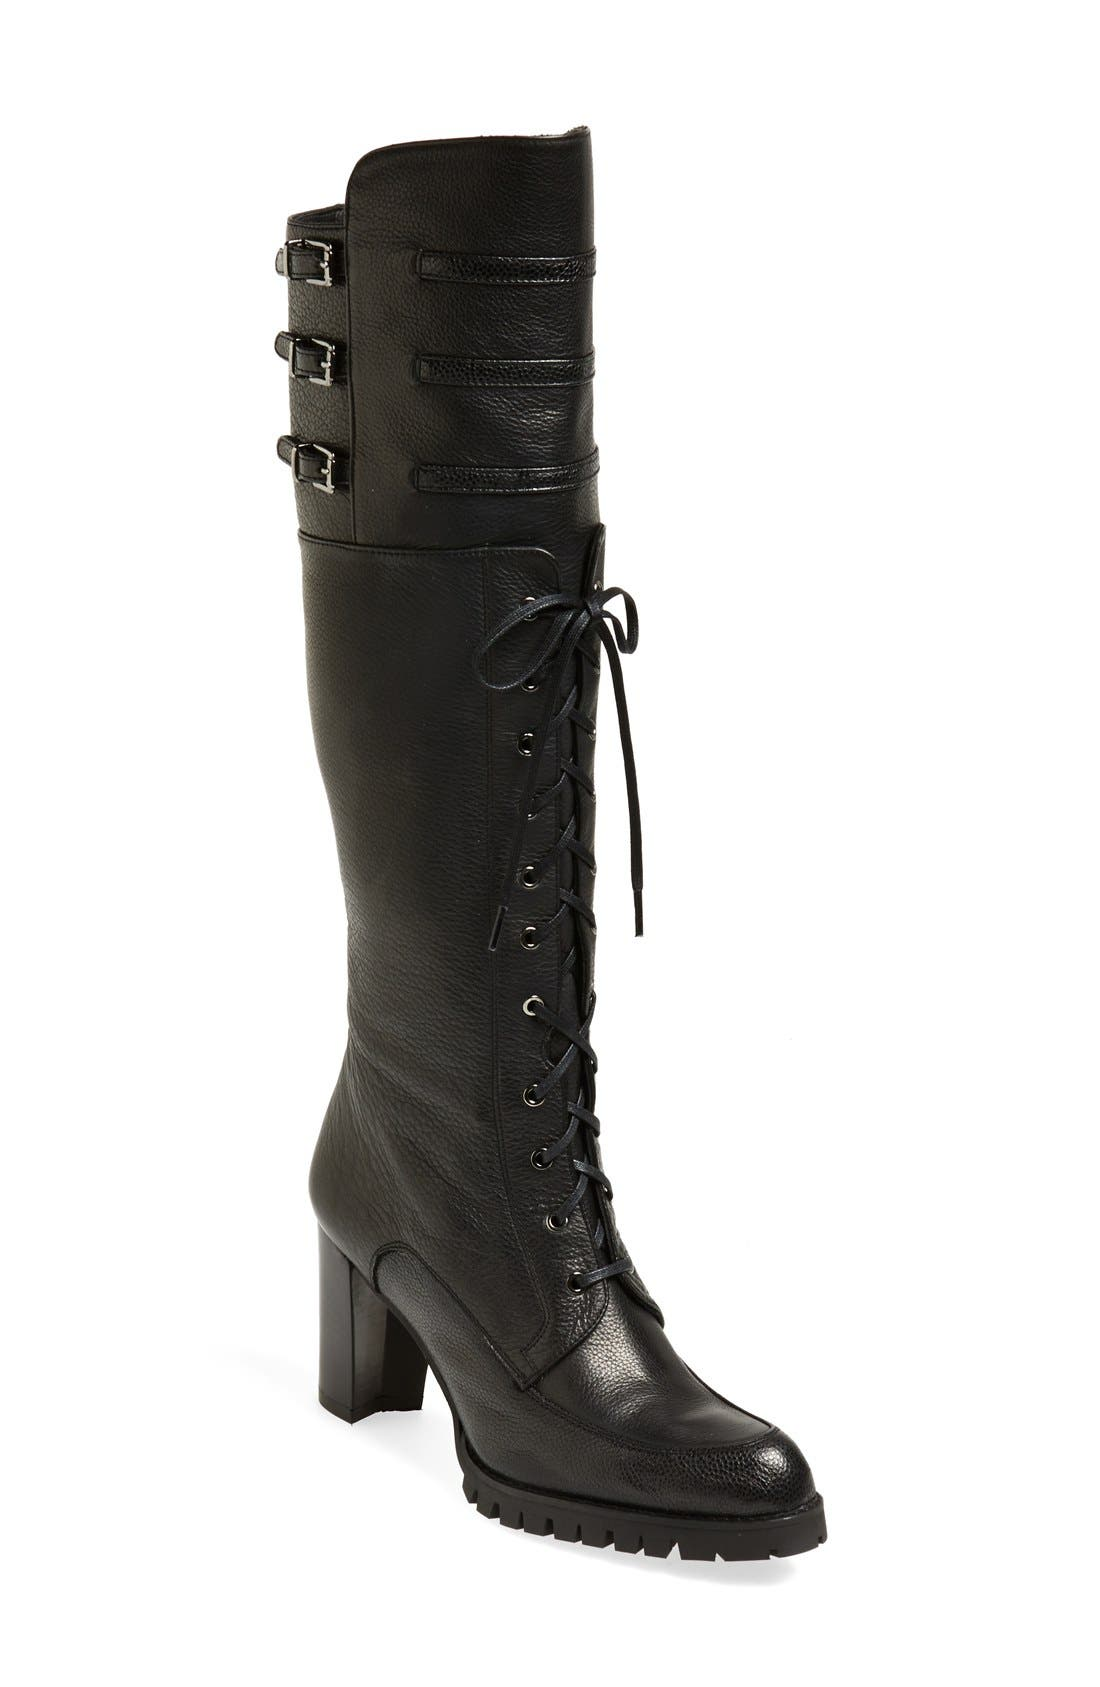 STUART WEITZMAN 'Soldier' Lace-Up Military Boot, Main, color, 001